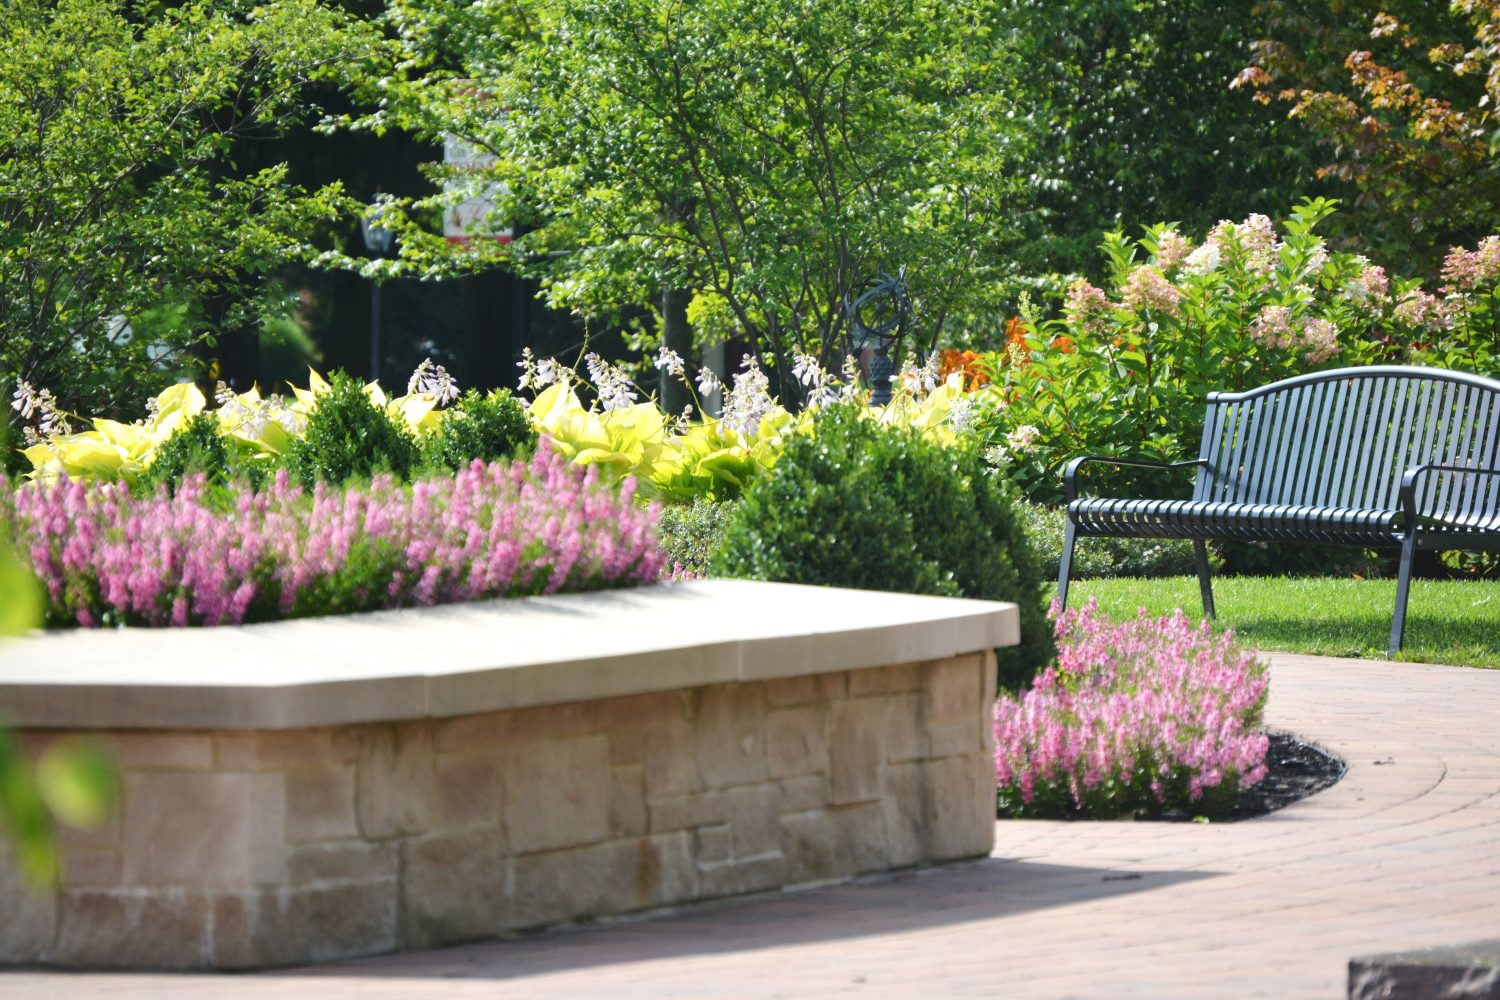 Outdoor park scene filled with annuals